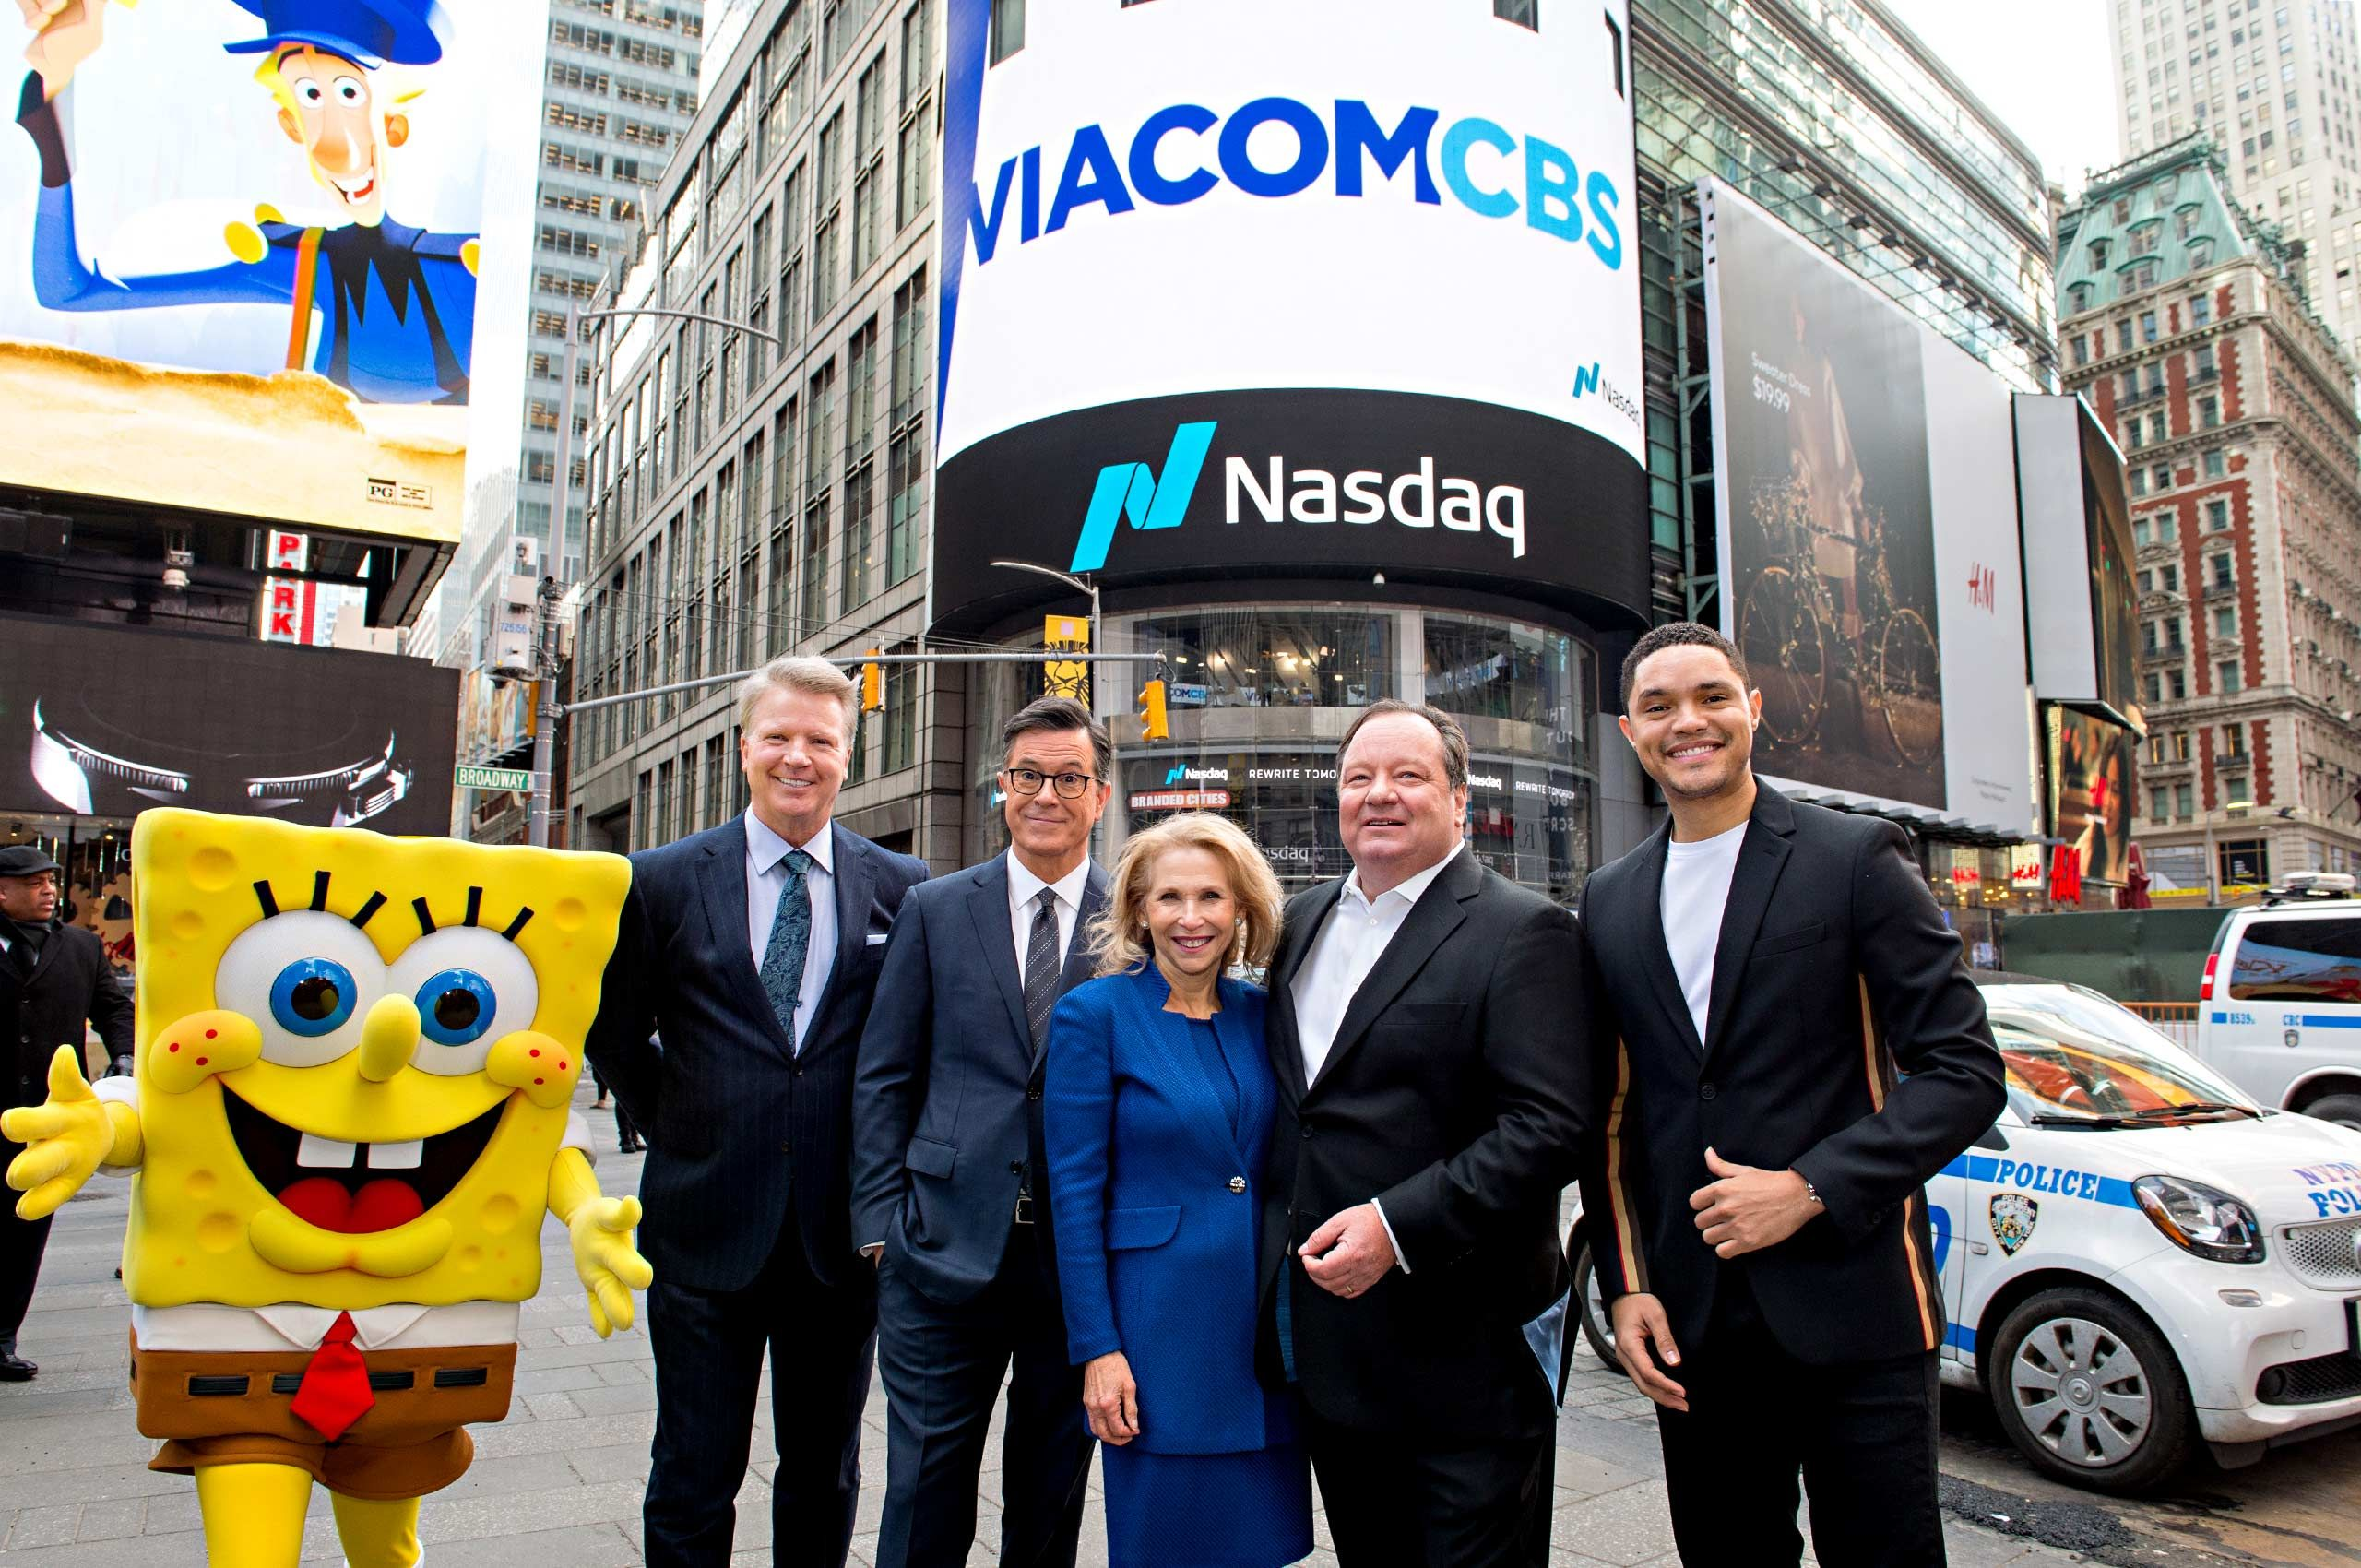 ViacomCBS Merger Day 1